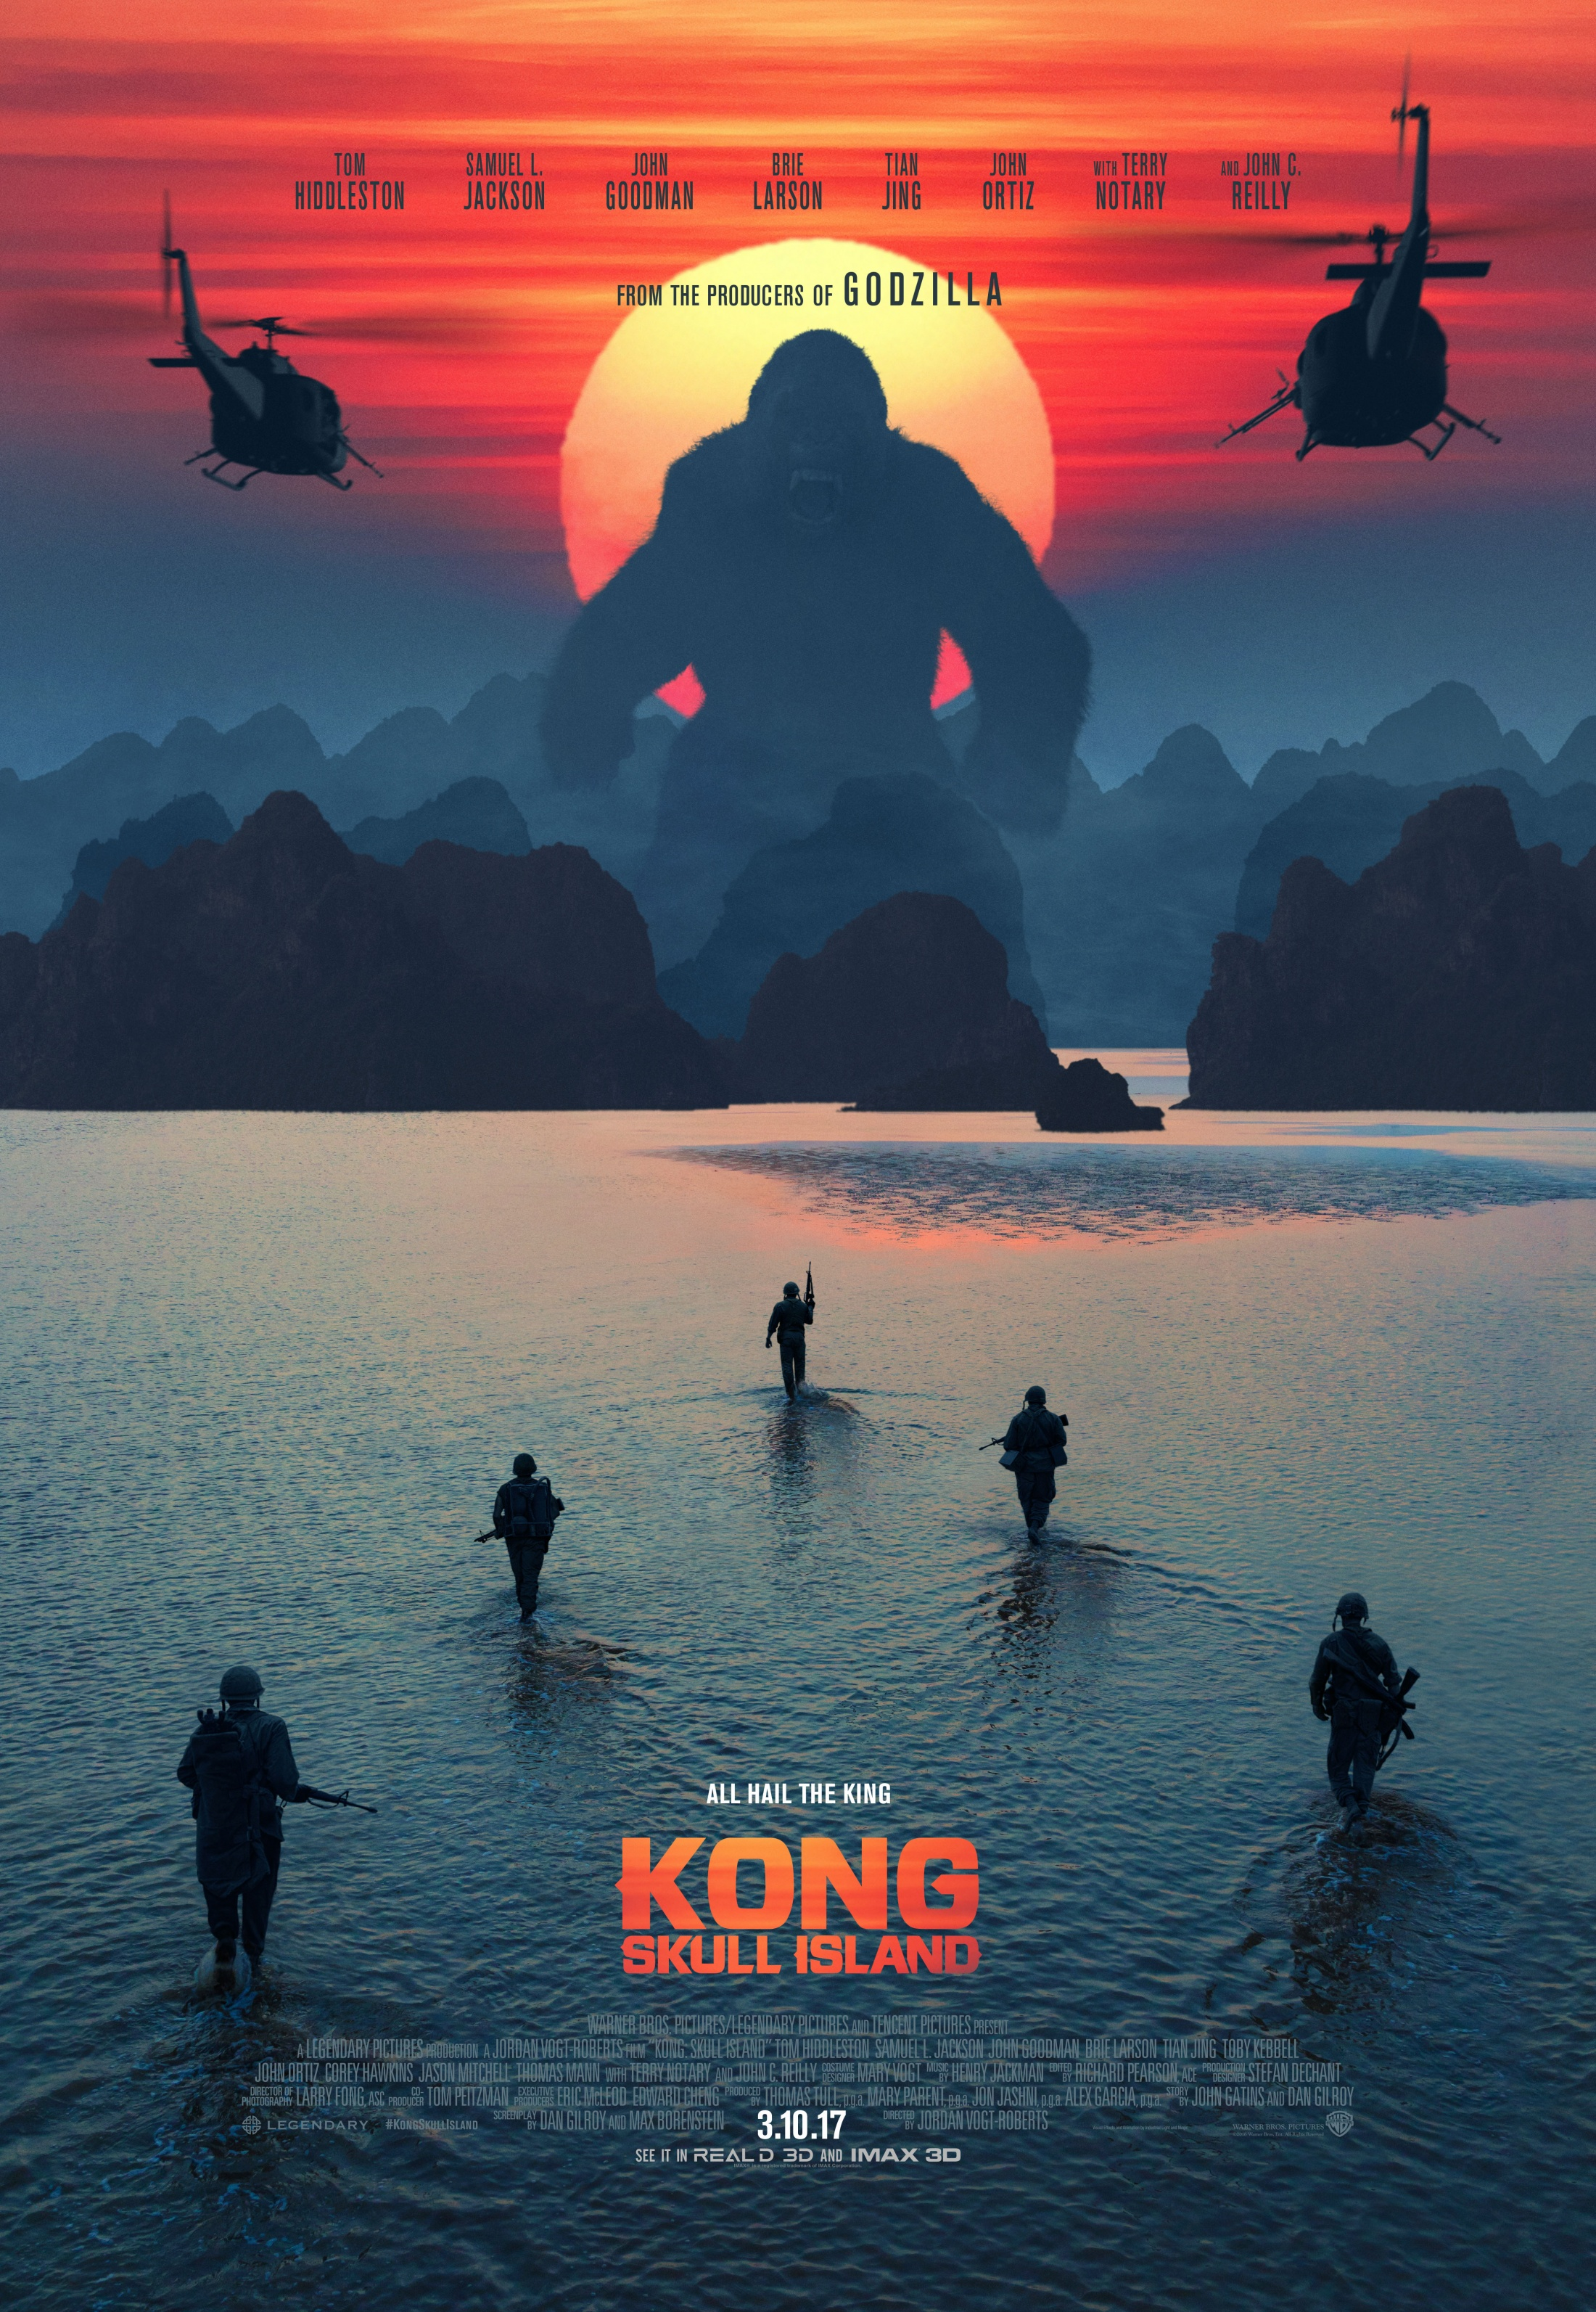 Thumbnail for Kong Teaser 1-Sheet